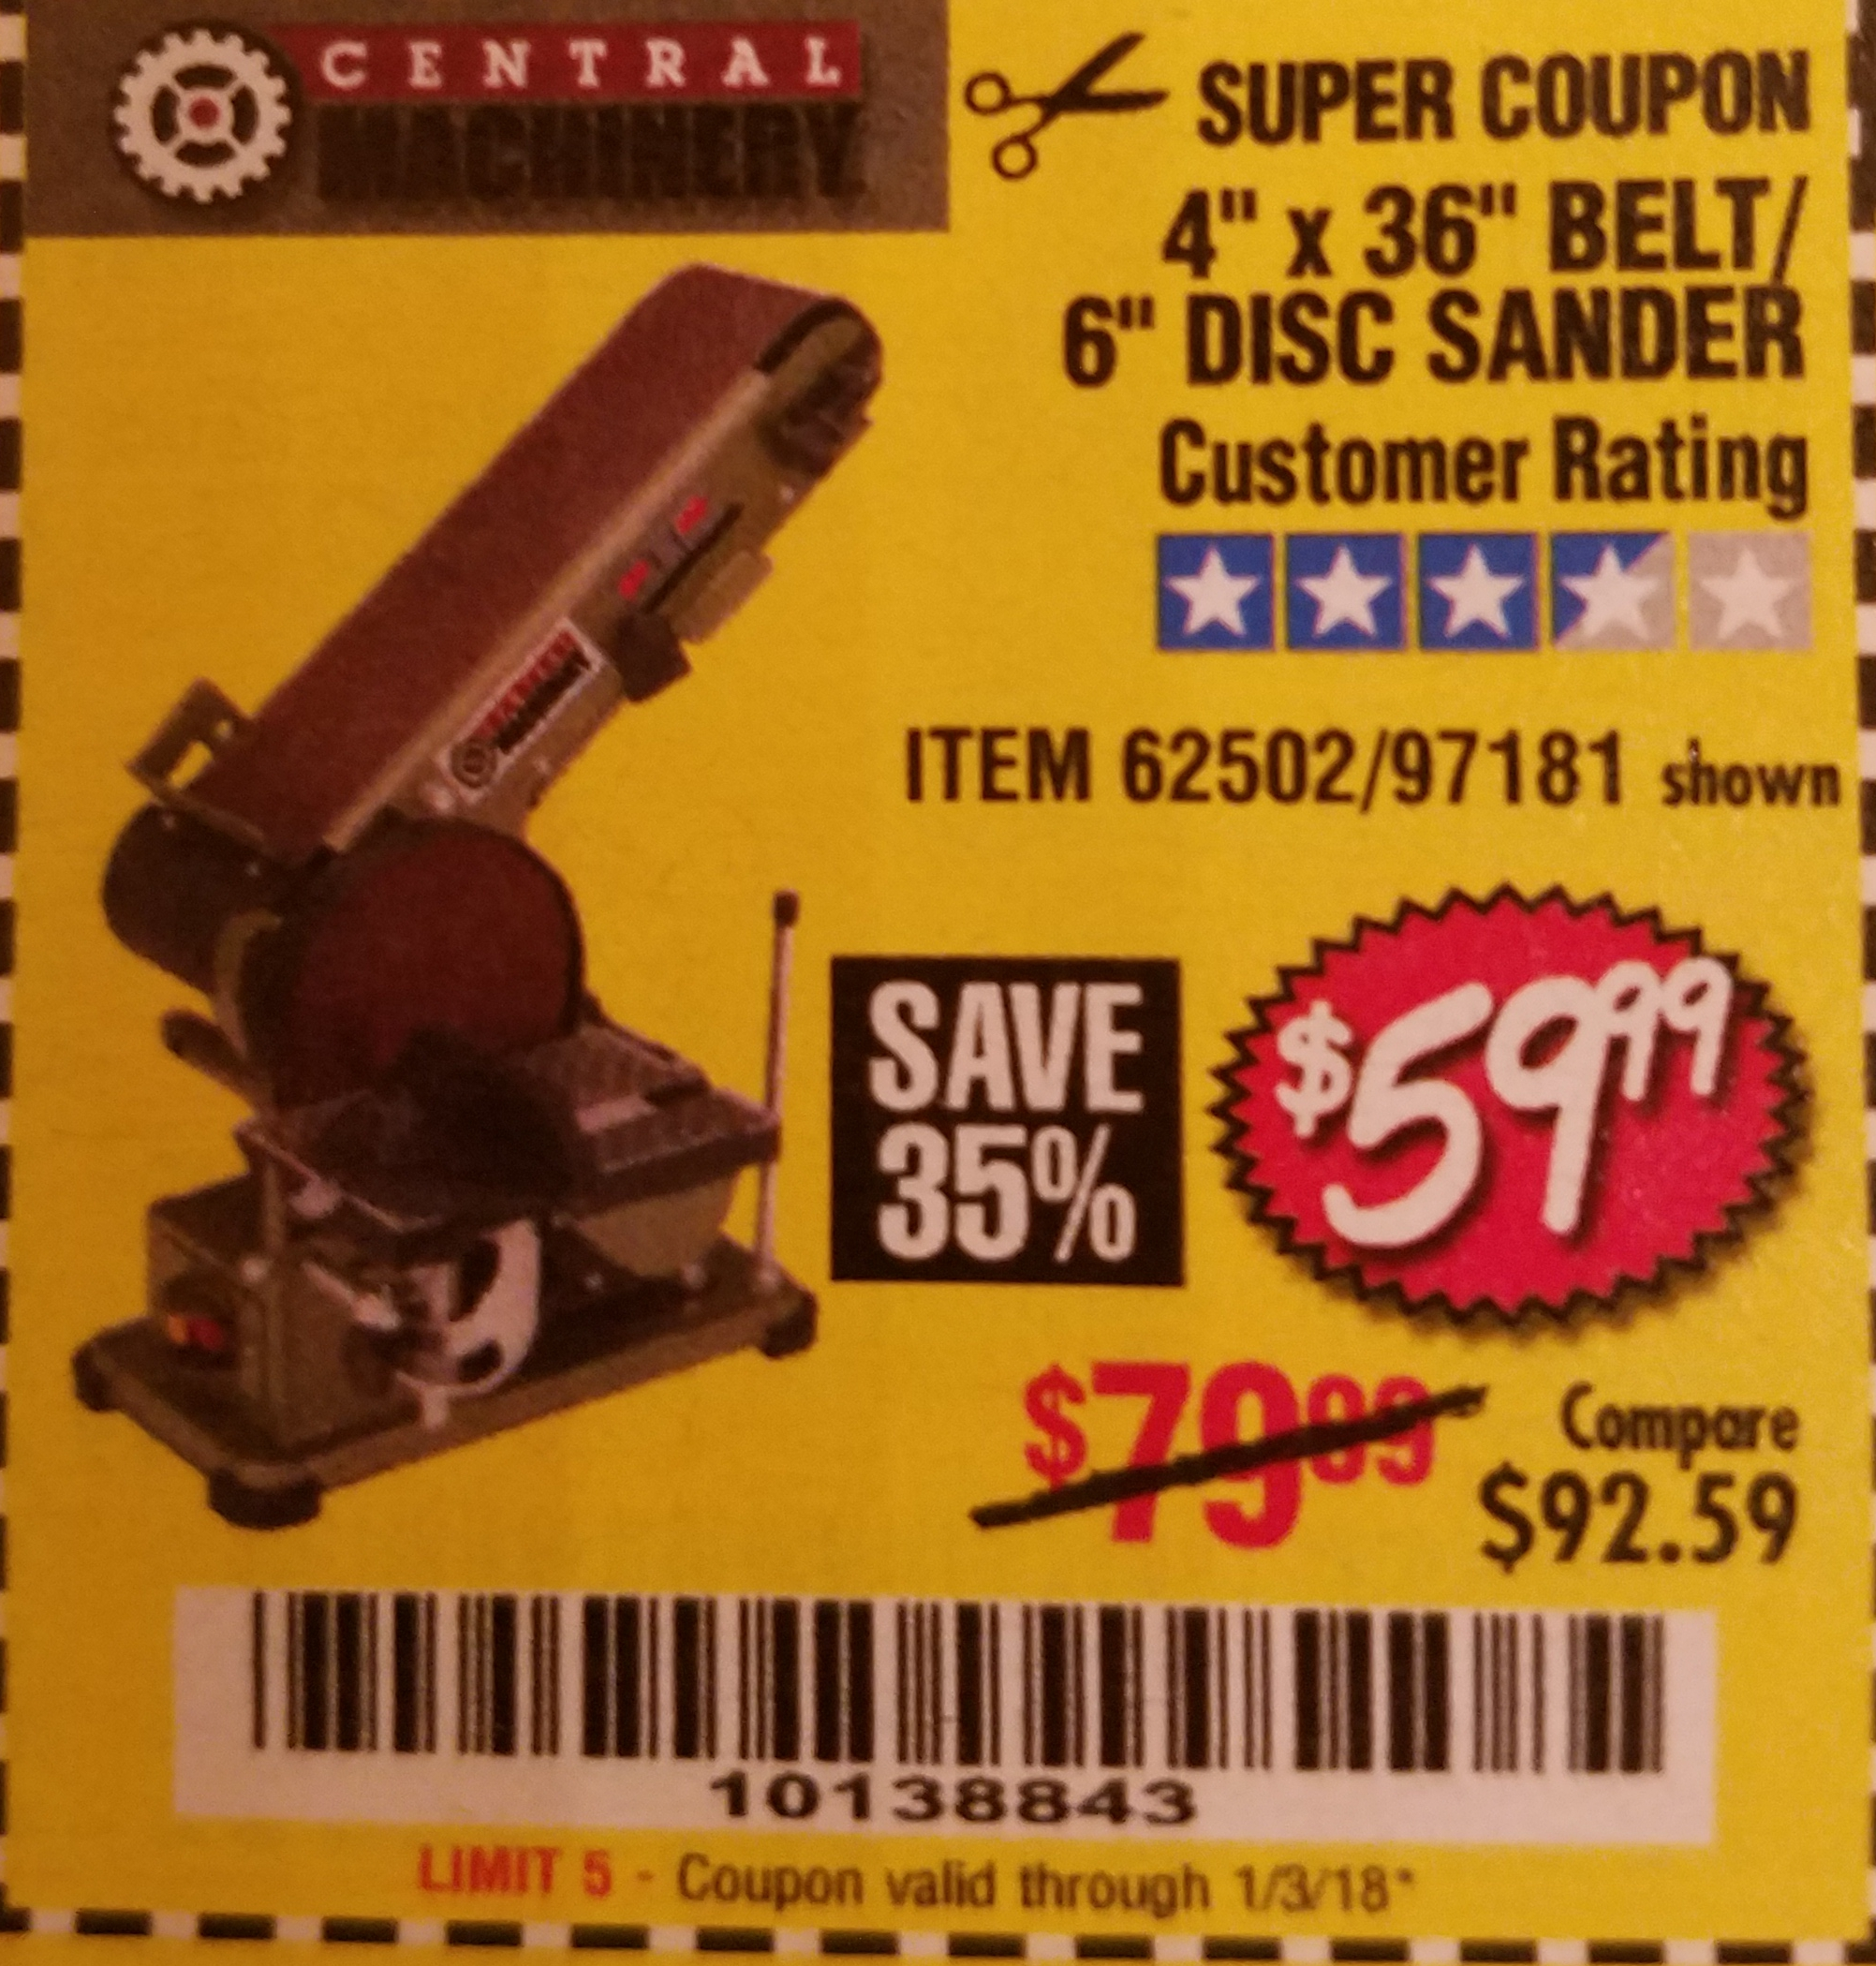 Examplary Harbor Freight Coupon X Disc Sander Lot No X Sander Lot Coupon Harbor Freight Tools Coupon Database Free Percent Off Harbor Freight Chainsaw Sharpener Manual Harbor Freight Chain Sharpener C houzz-03 Harbor Freight Chainsaw Sharpener